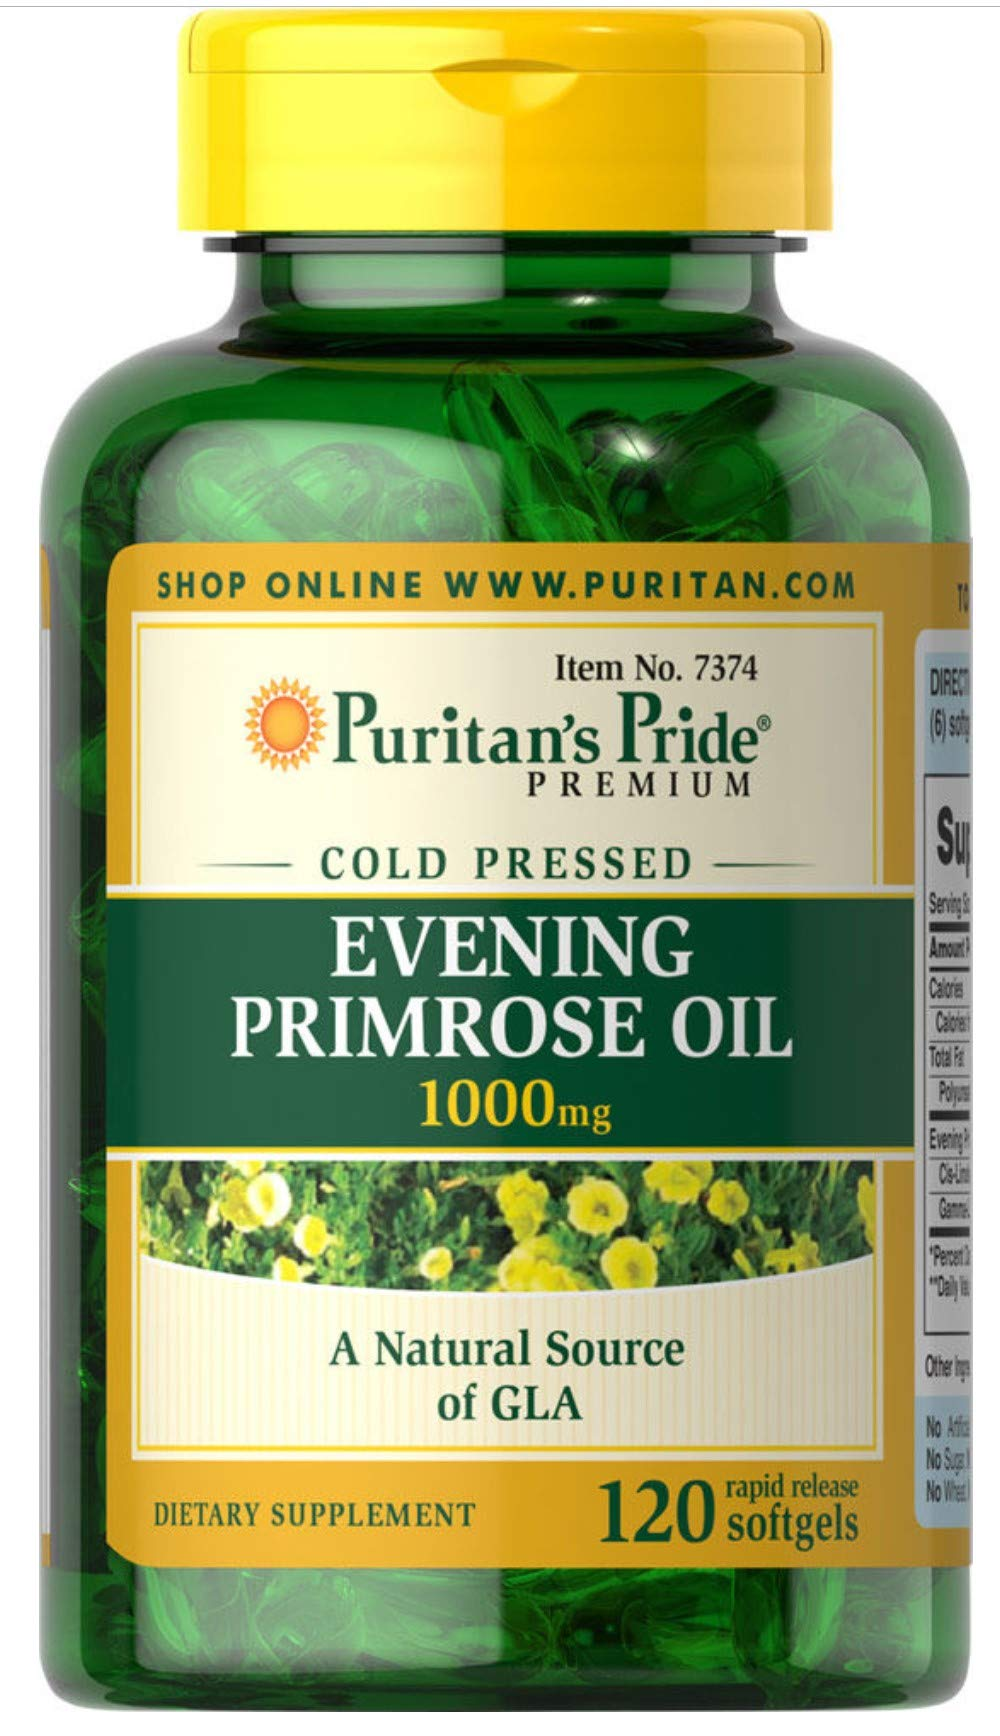 Puritan's Pride Evening Primrose Oil 1000 mg with GLA -120 Softgels by Puritan's Pride